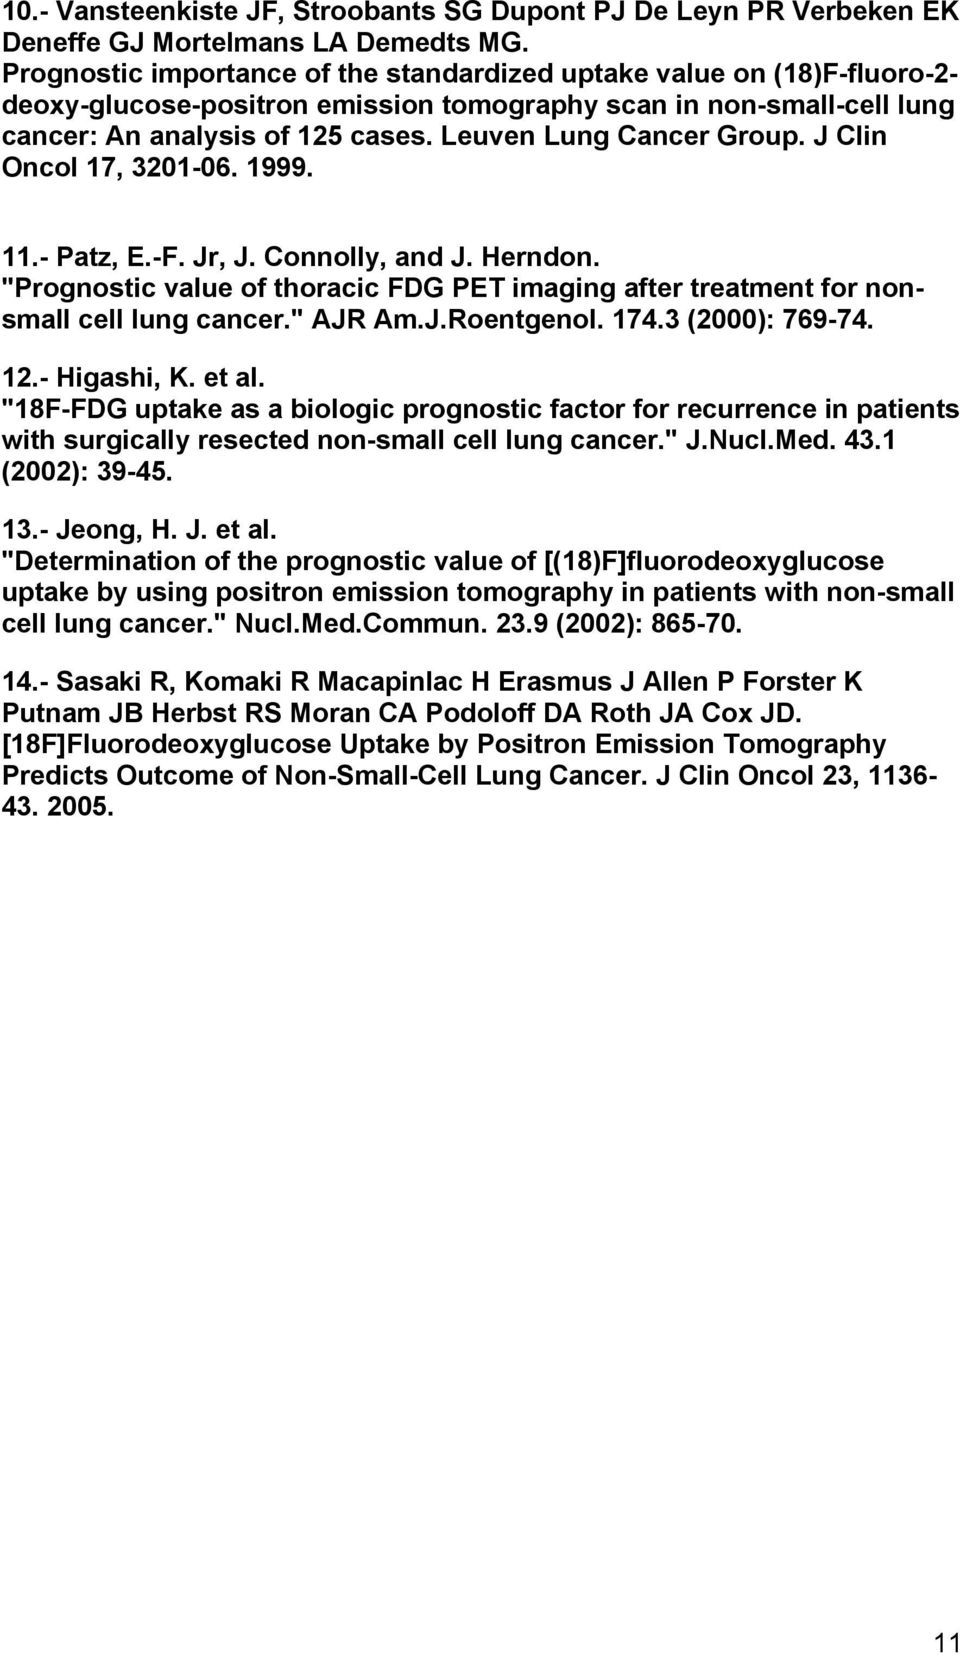 "Leuven Lung Cancer Group. J Clin Oncol 17, 3201-06. 1999. 11.- Patz, E.-F. Jr, J. Connolly, and J. Herndon. ""Prognostic value of thoracic FDG PET imaging after treatment for nonsmall cell lung cancer."